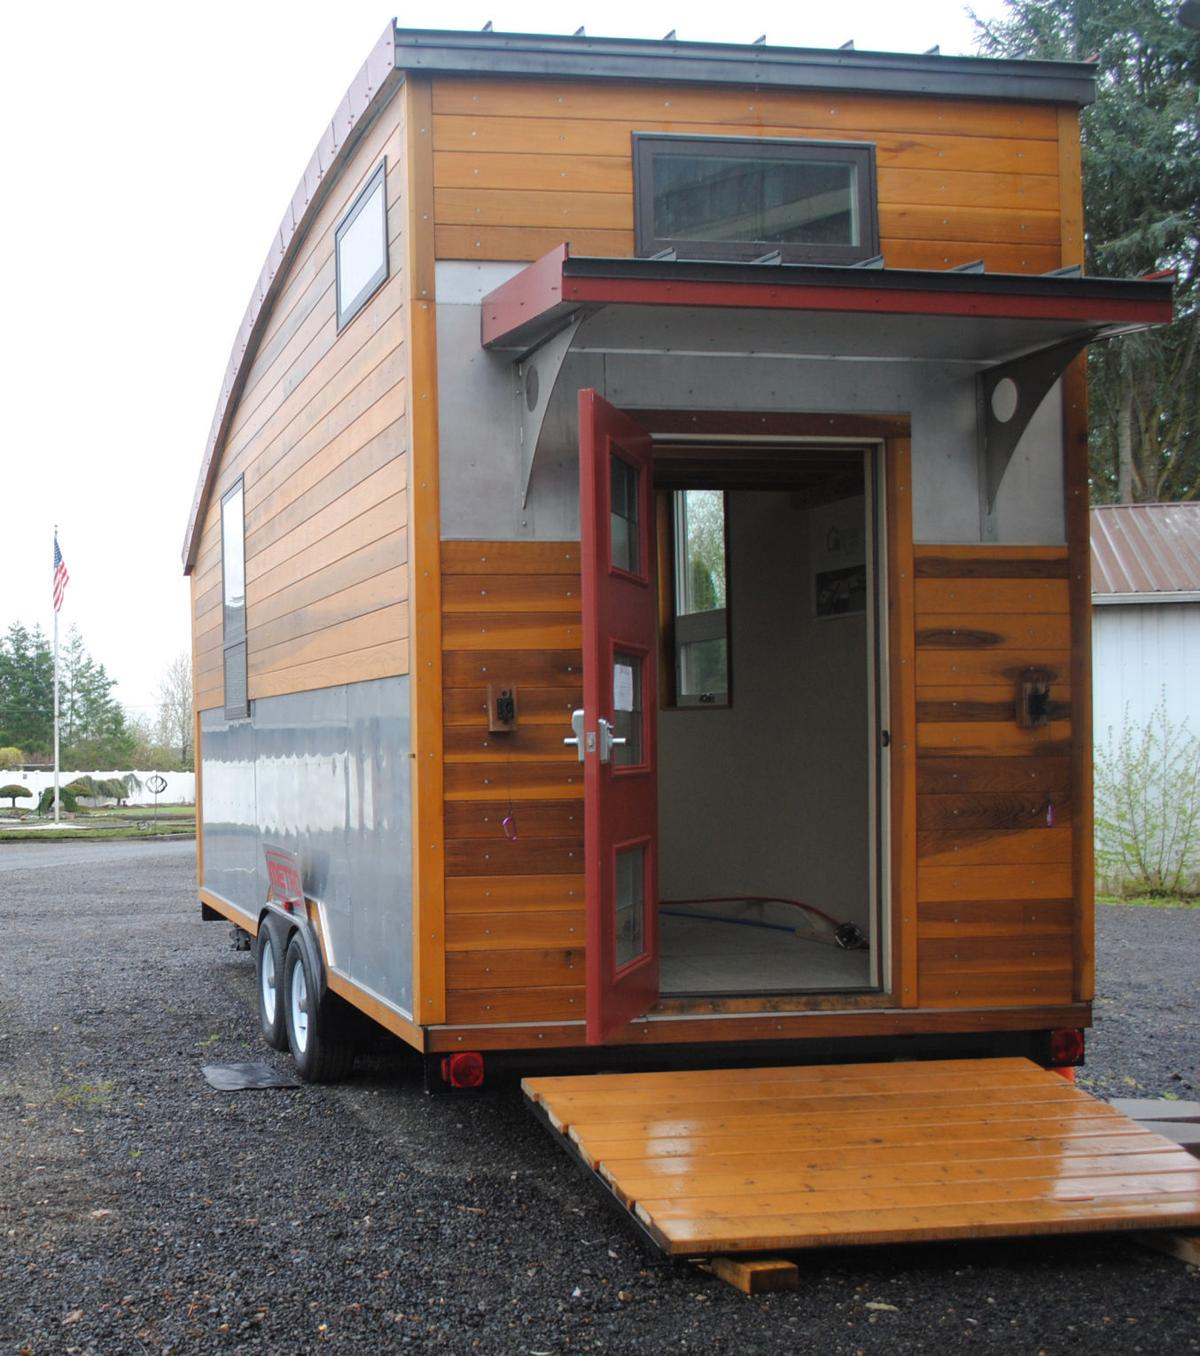 tiny house expo. local tiny house builder patrick sughrue, whose work is seen here, will be one of the several presenters at living expo that come to